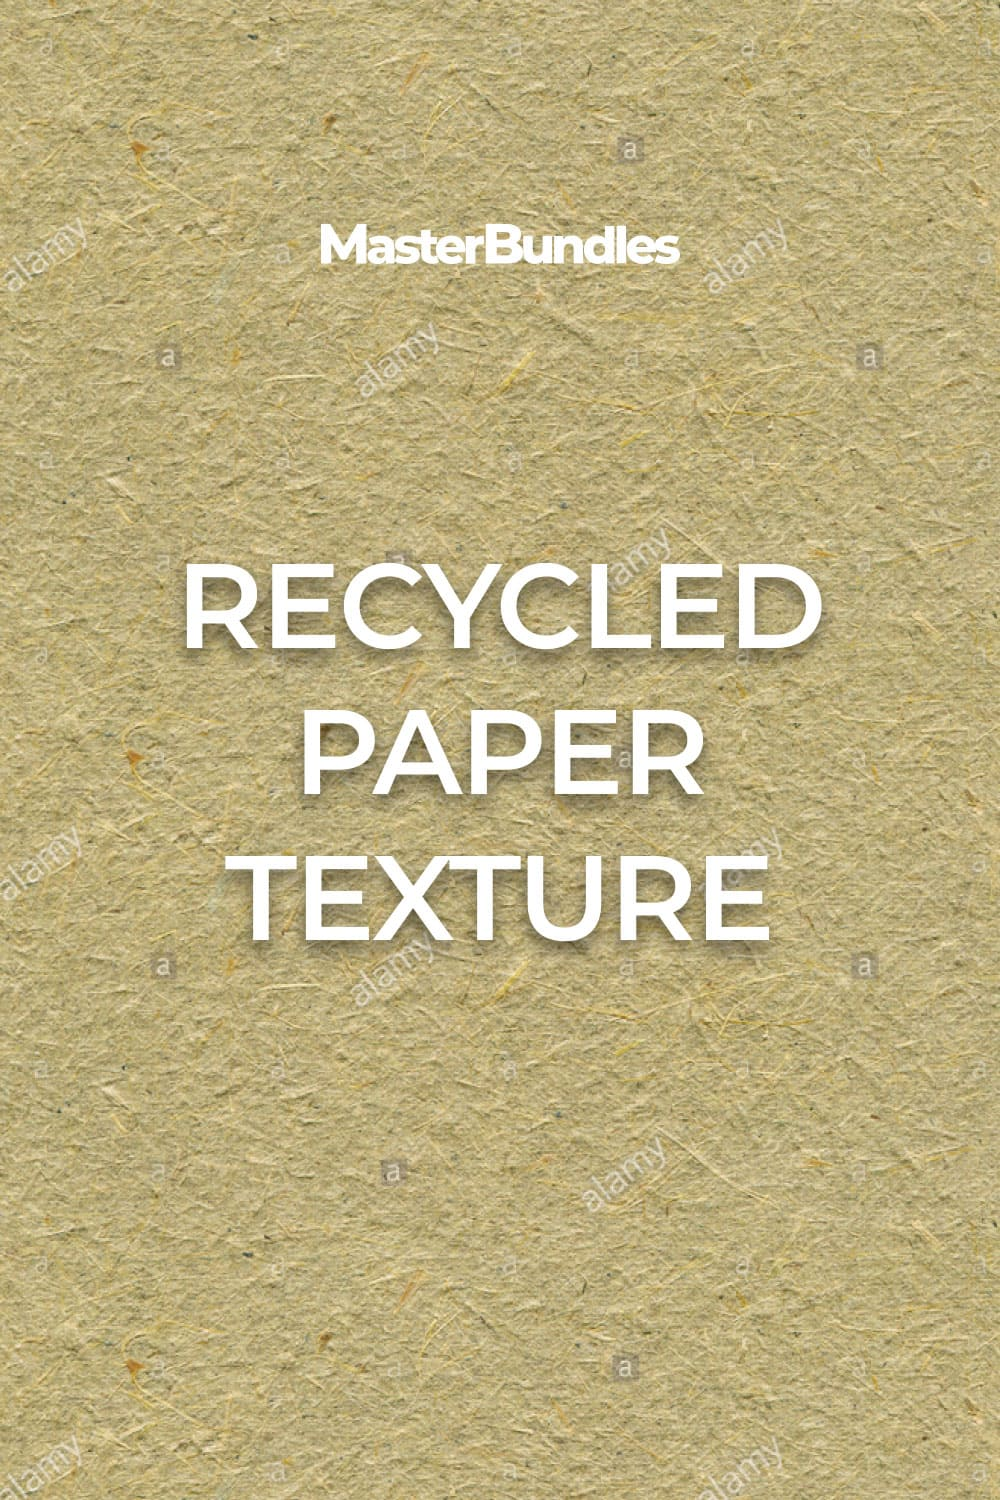 Recycled Paper Texture.